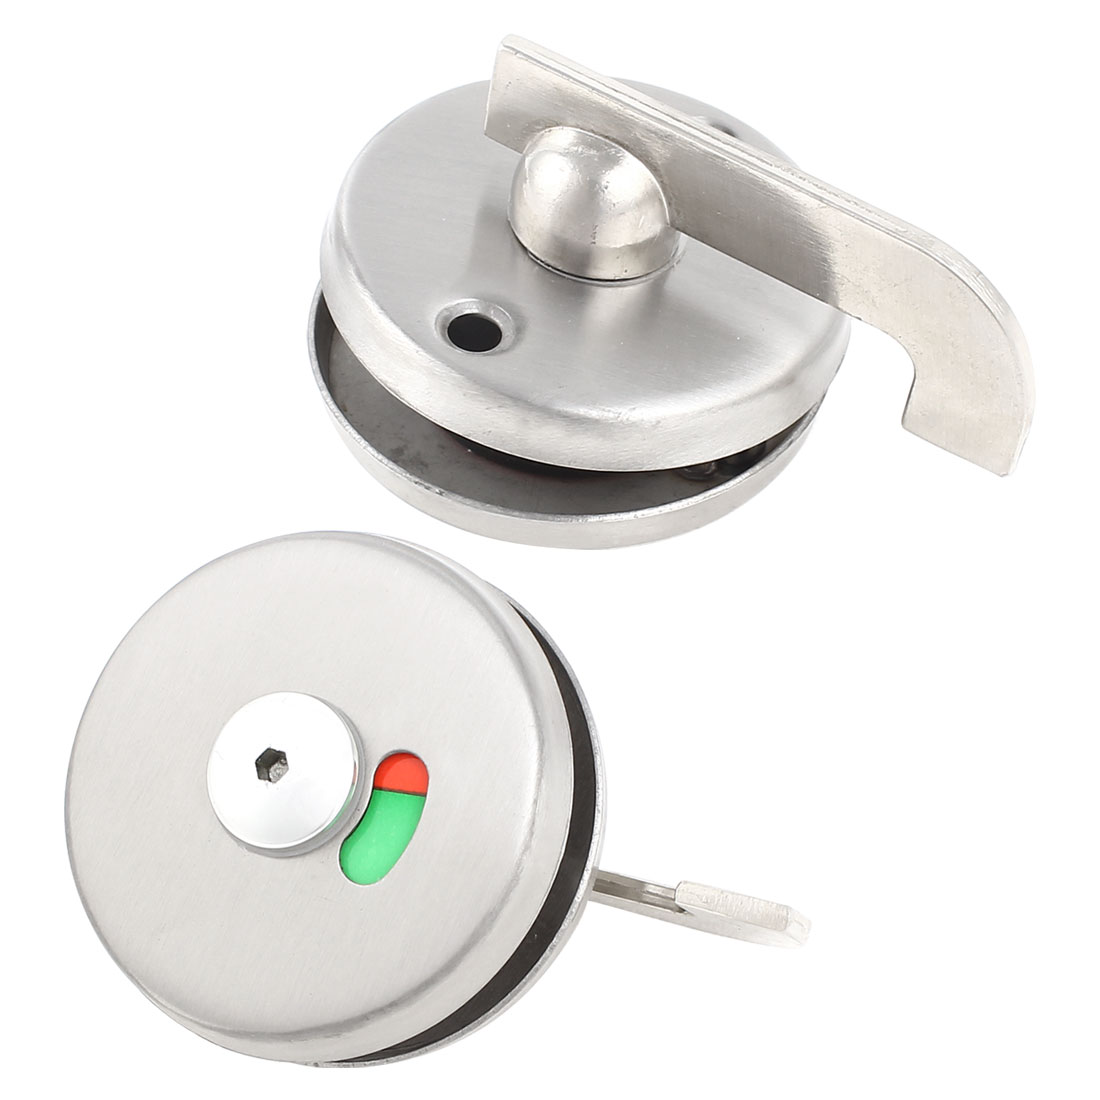 Silver Tone Stainless Steel Household Doorknob PublicToilet Door Lock